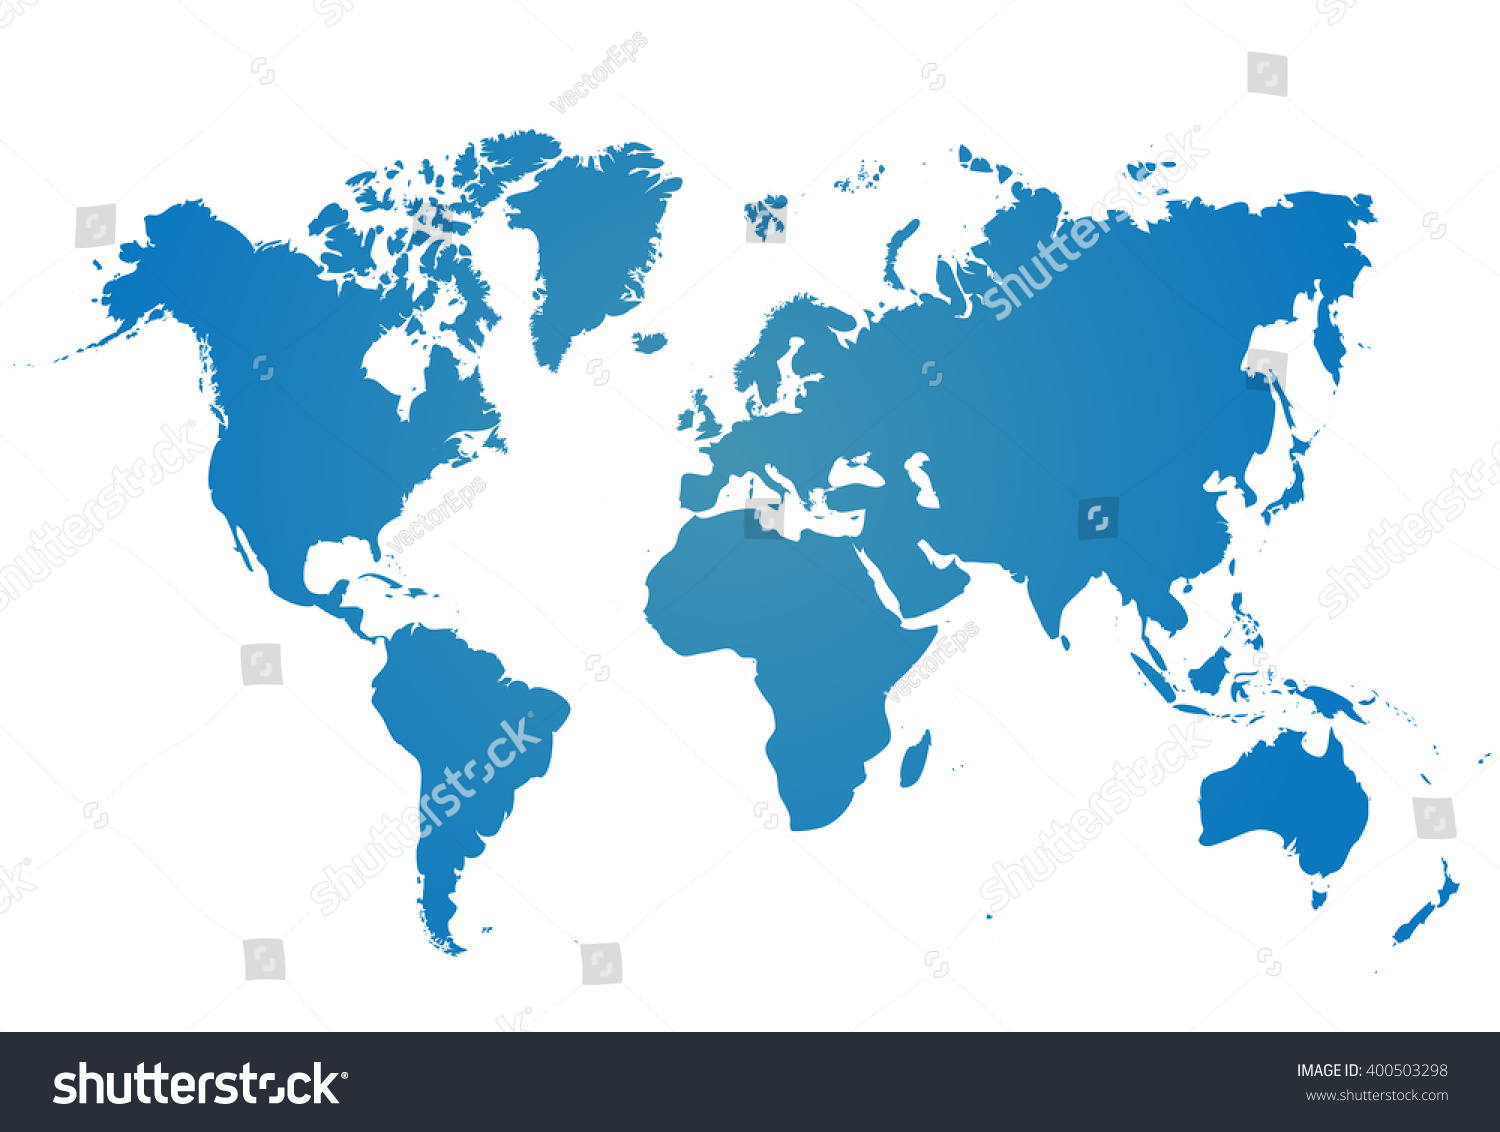 Similar world map isolated on white stock vector royalty free similar world map isolated on white background blue worldmap vector template for website design gumiabroncs Gallery